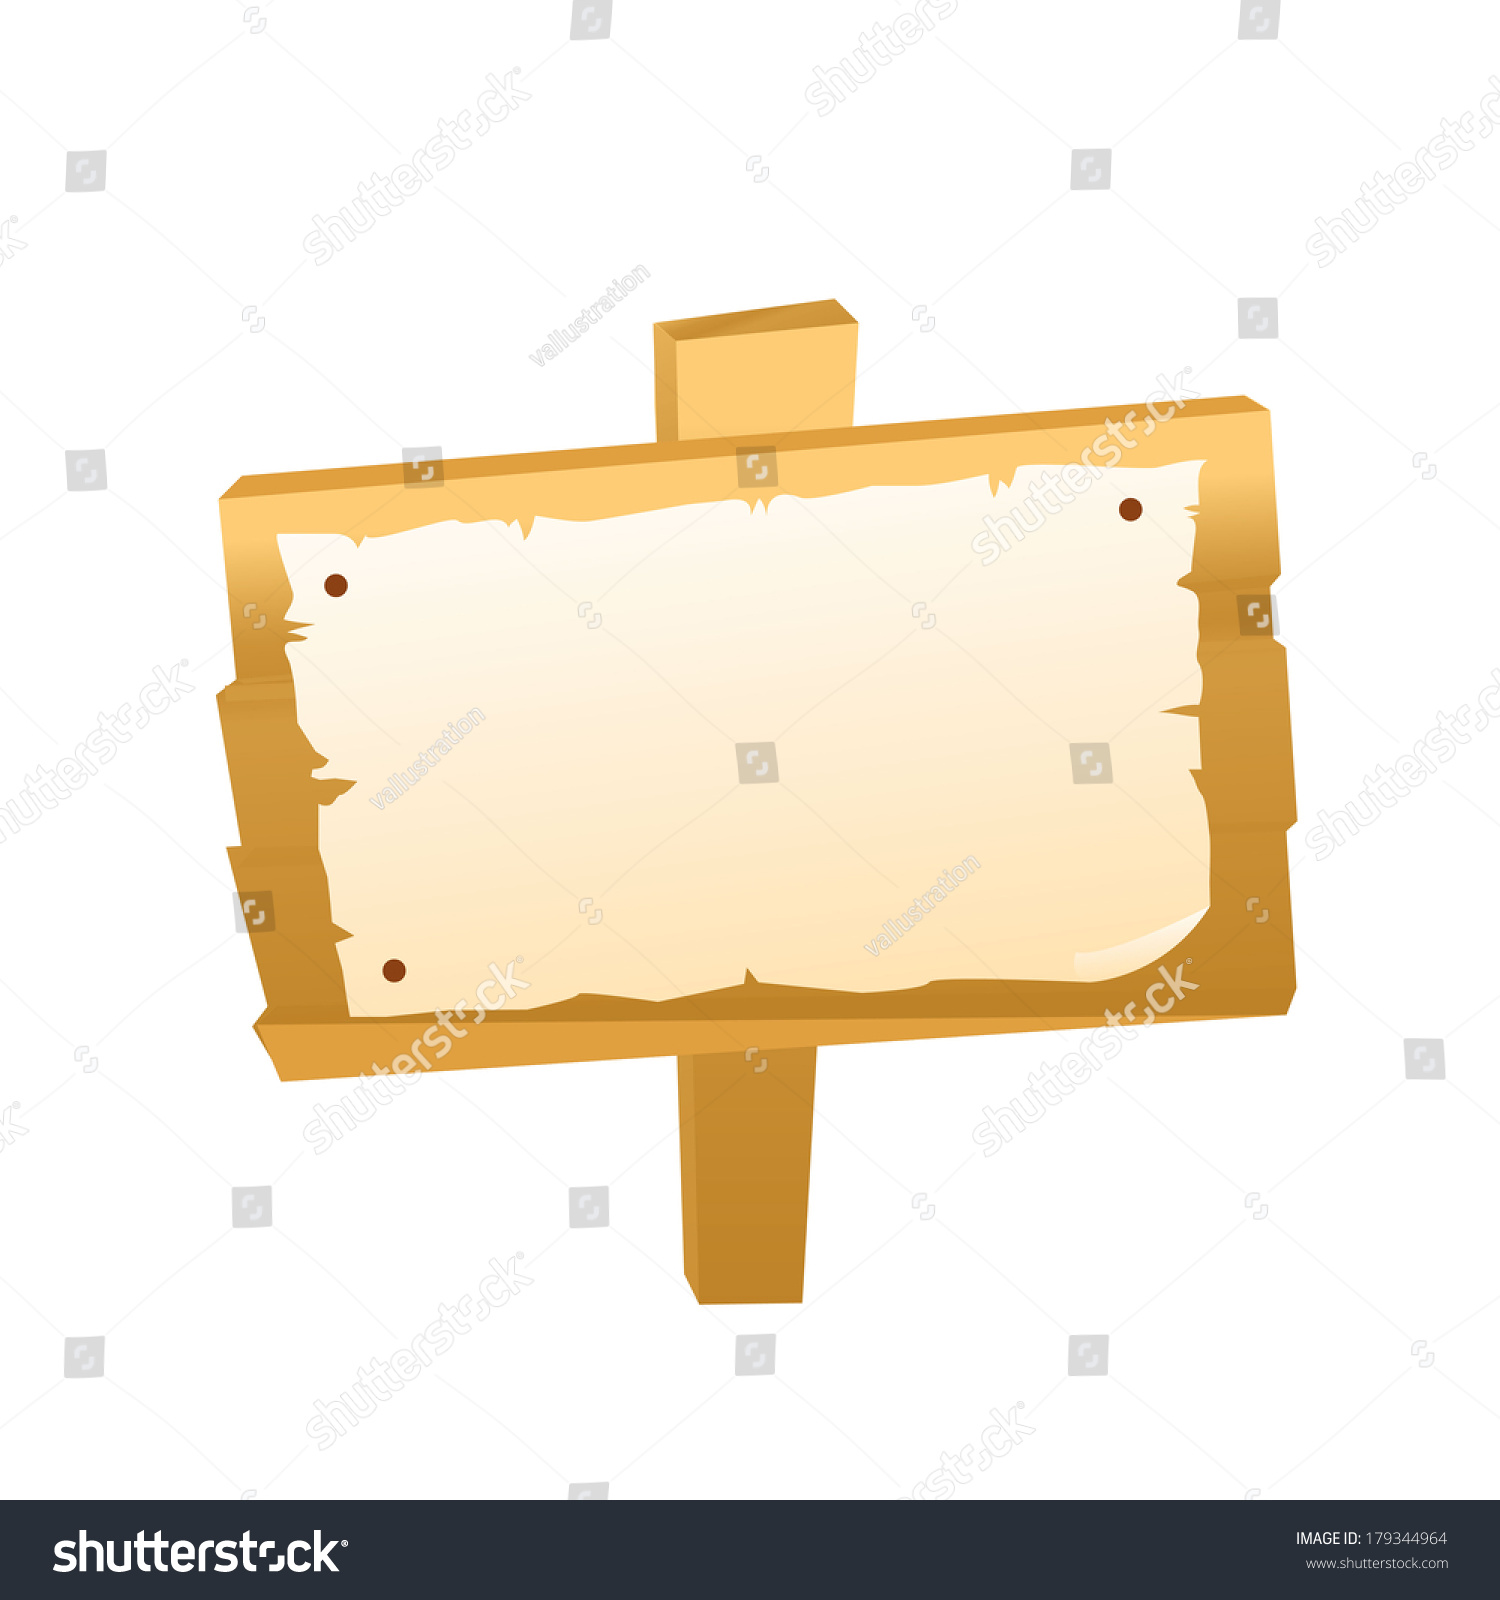 Blank Signboard Template Background Others Stock Vector 179344964 ...